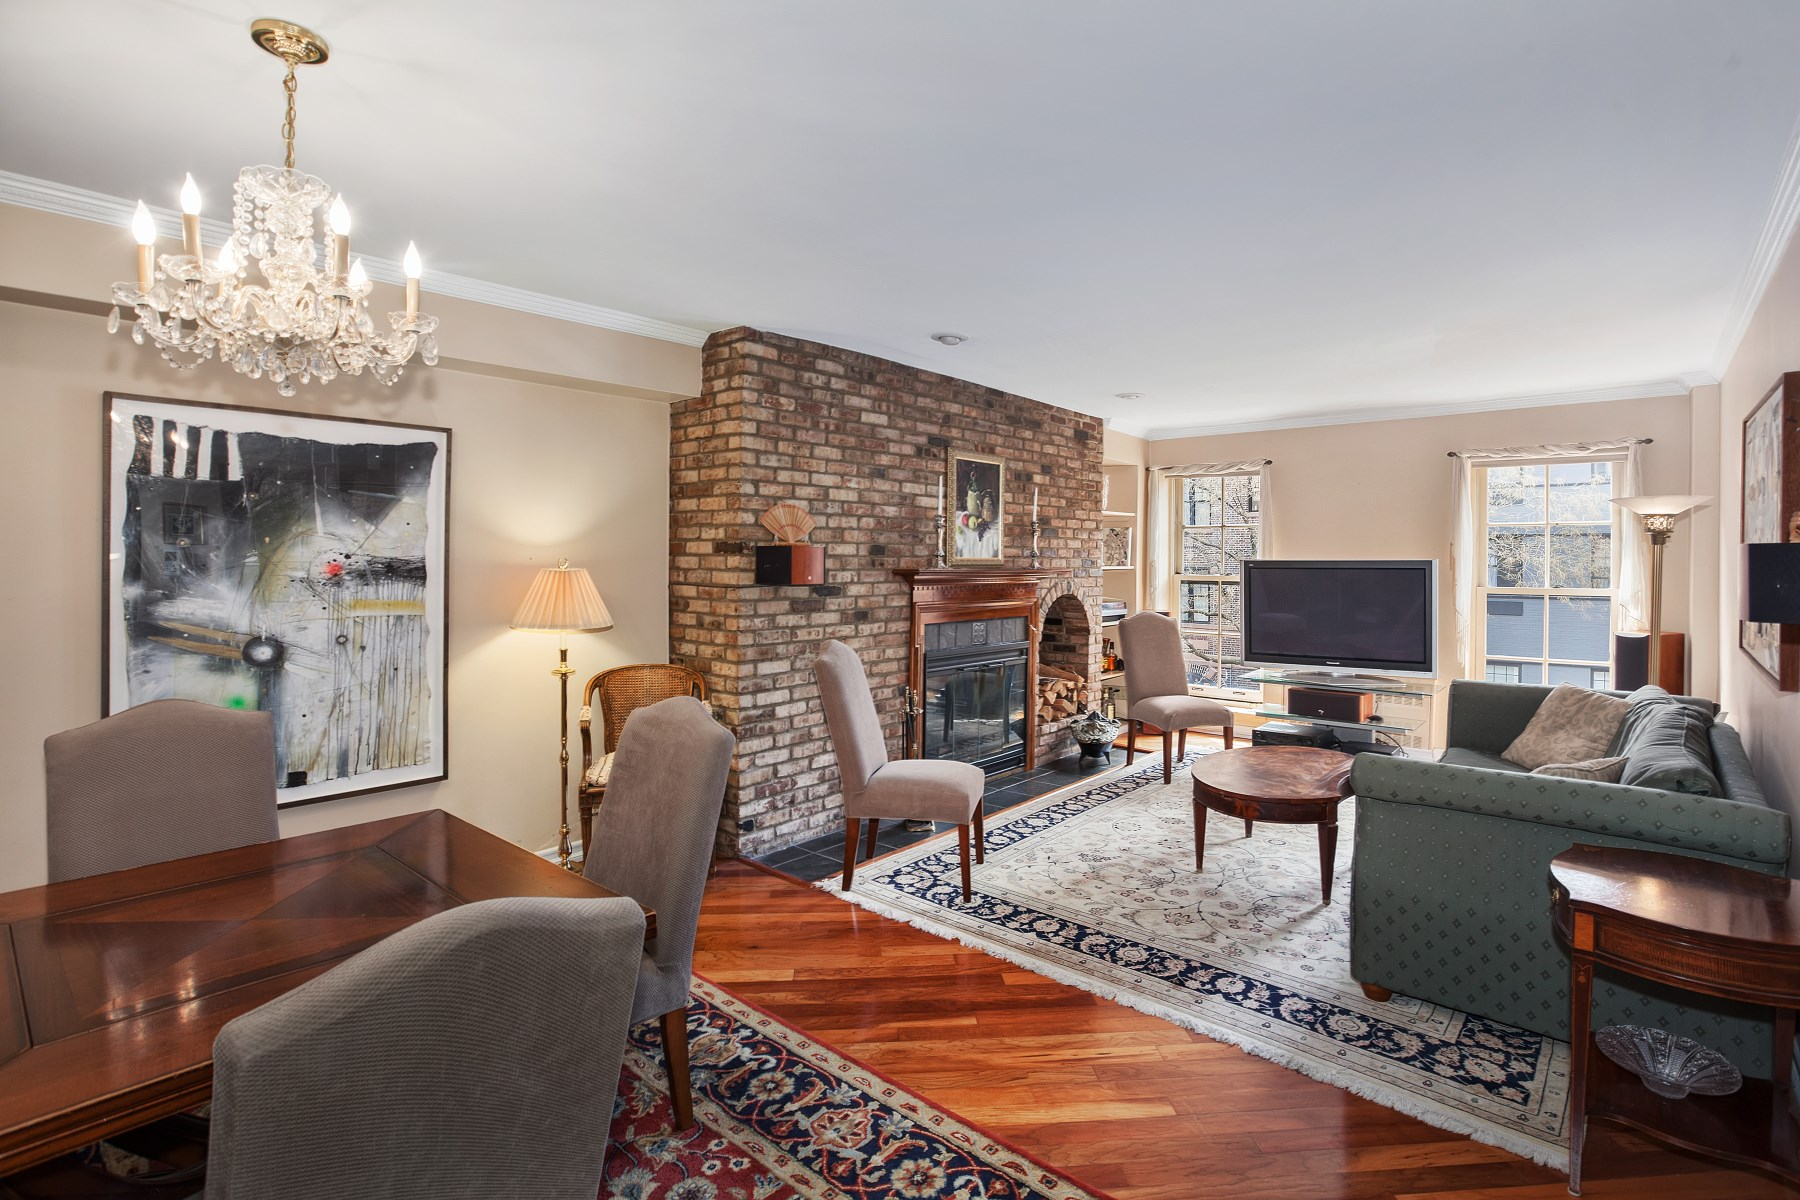 Condominium for Sale at Sun-Drenched Chelsea Condominium 313 West 22nd Street Apt 2C Chelsea, New York, New York, 10011 United States